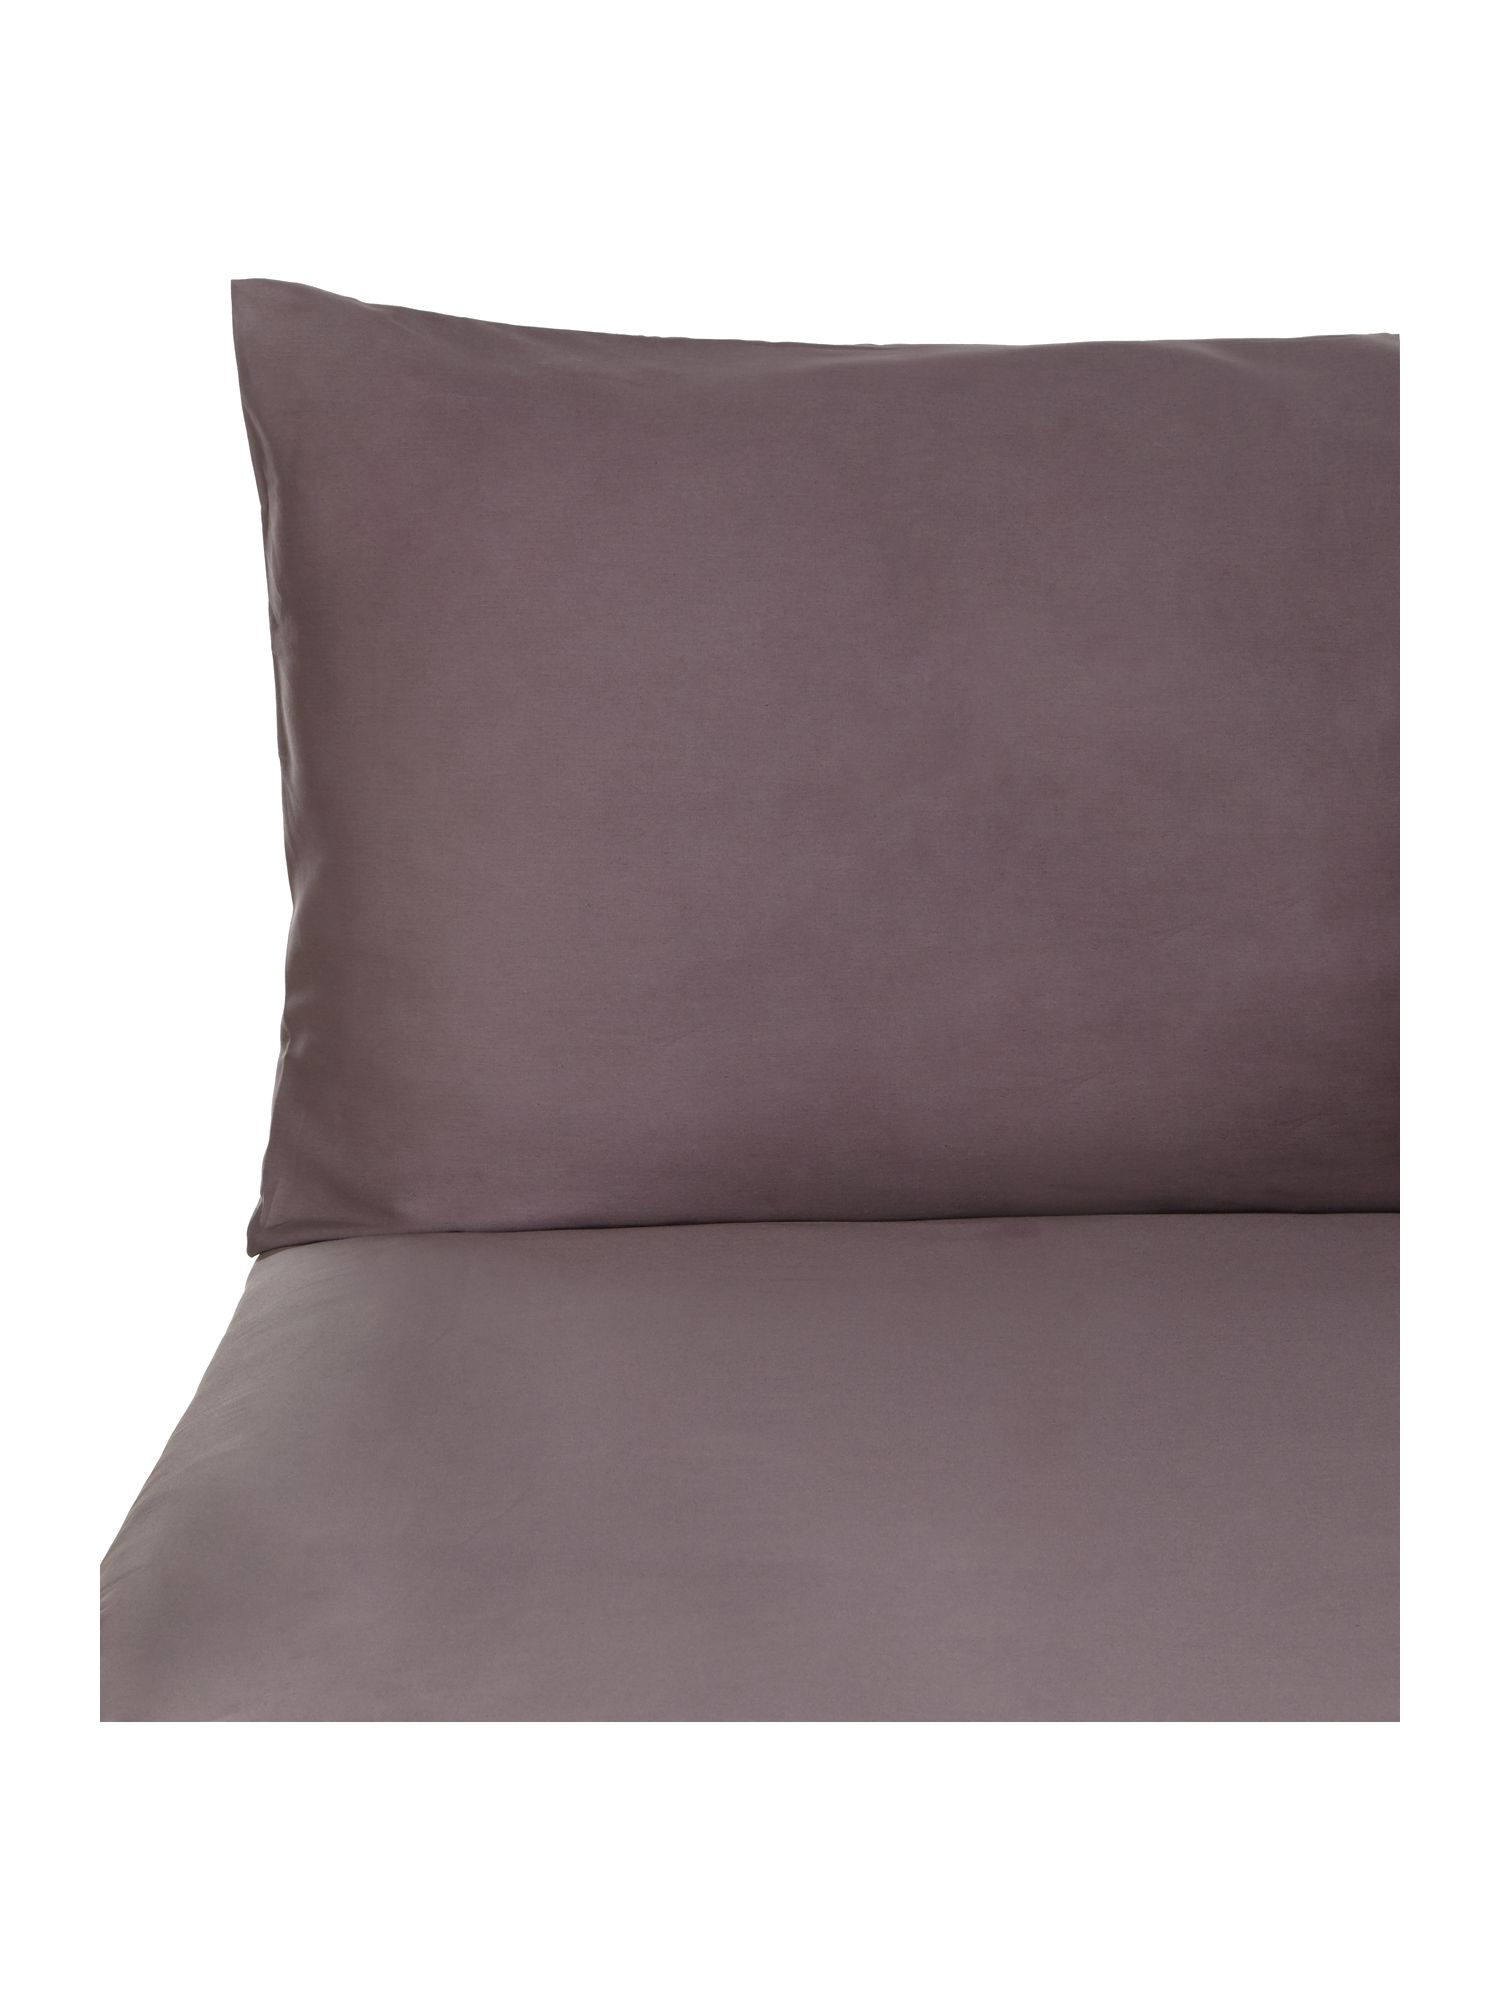 Graphite oxford pillowcase pair